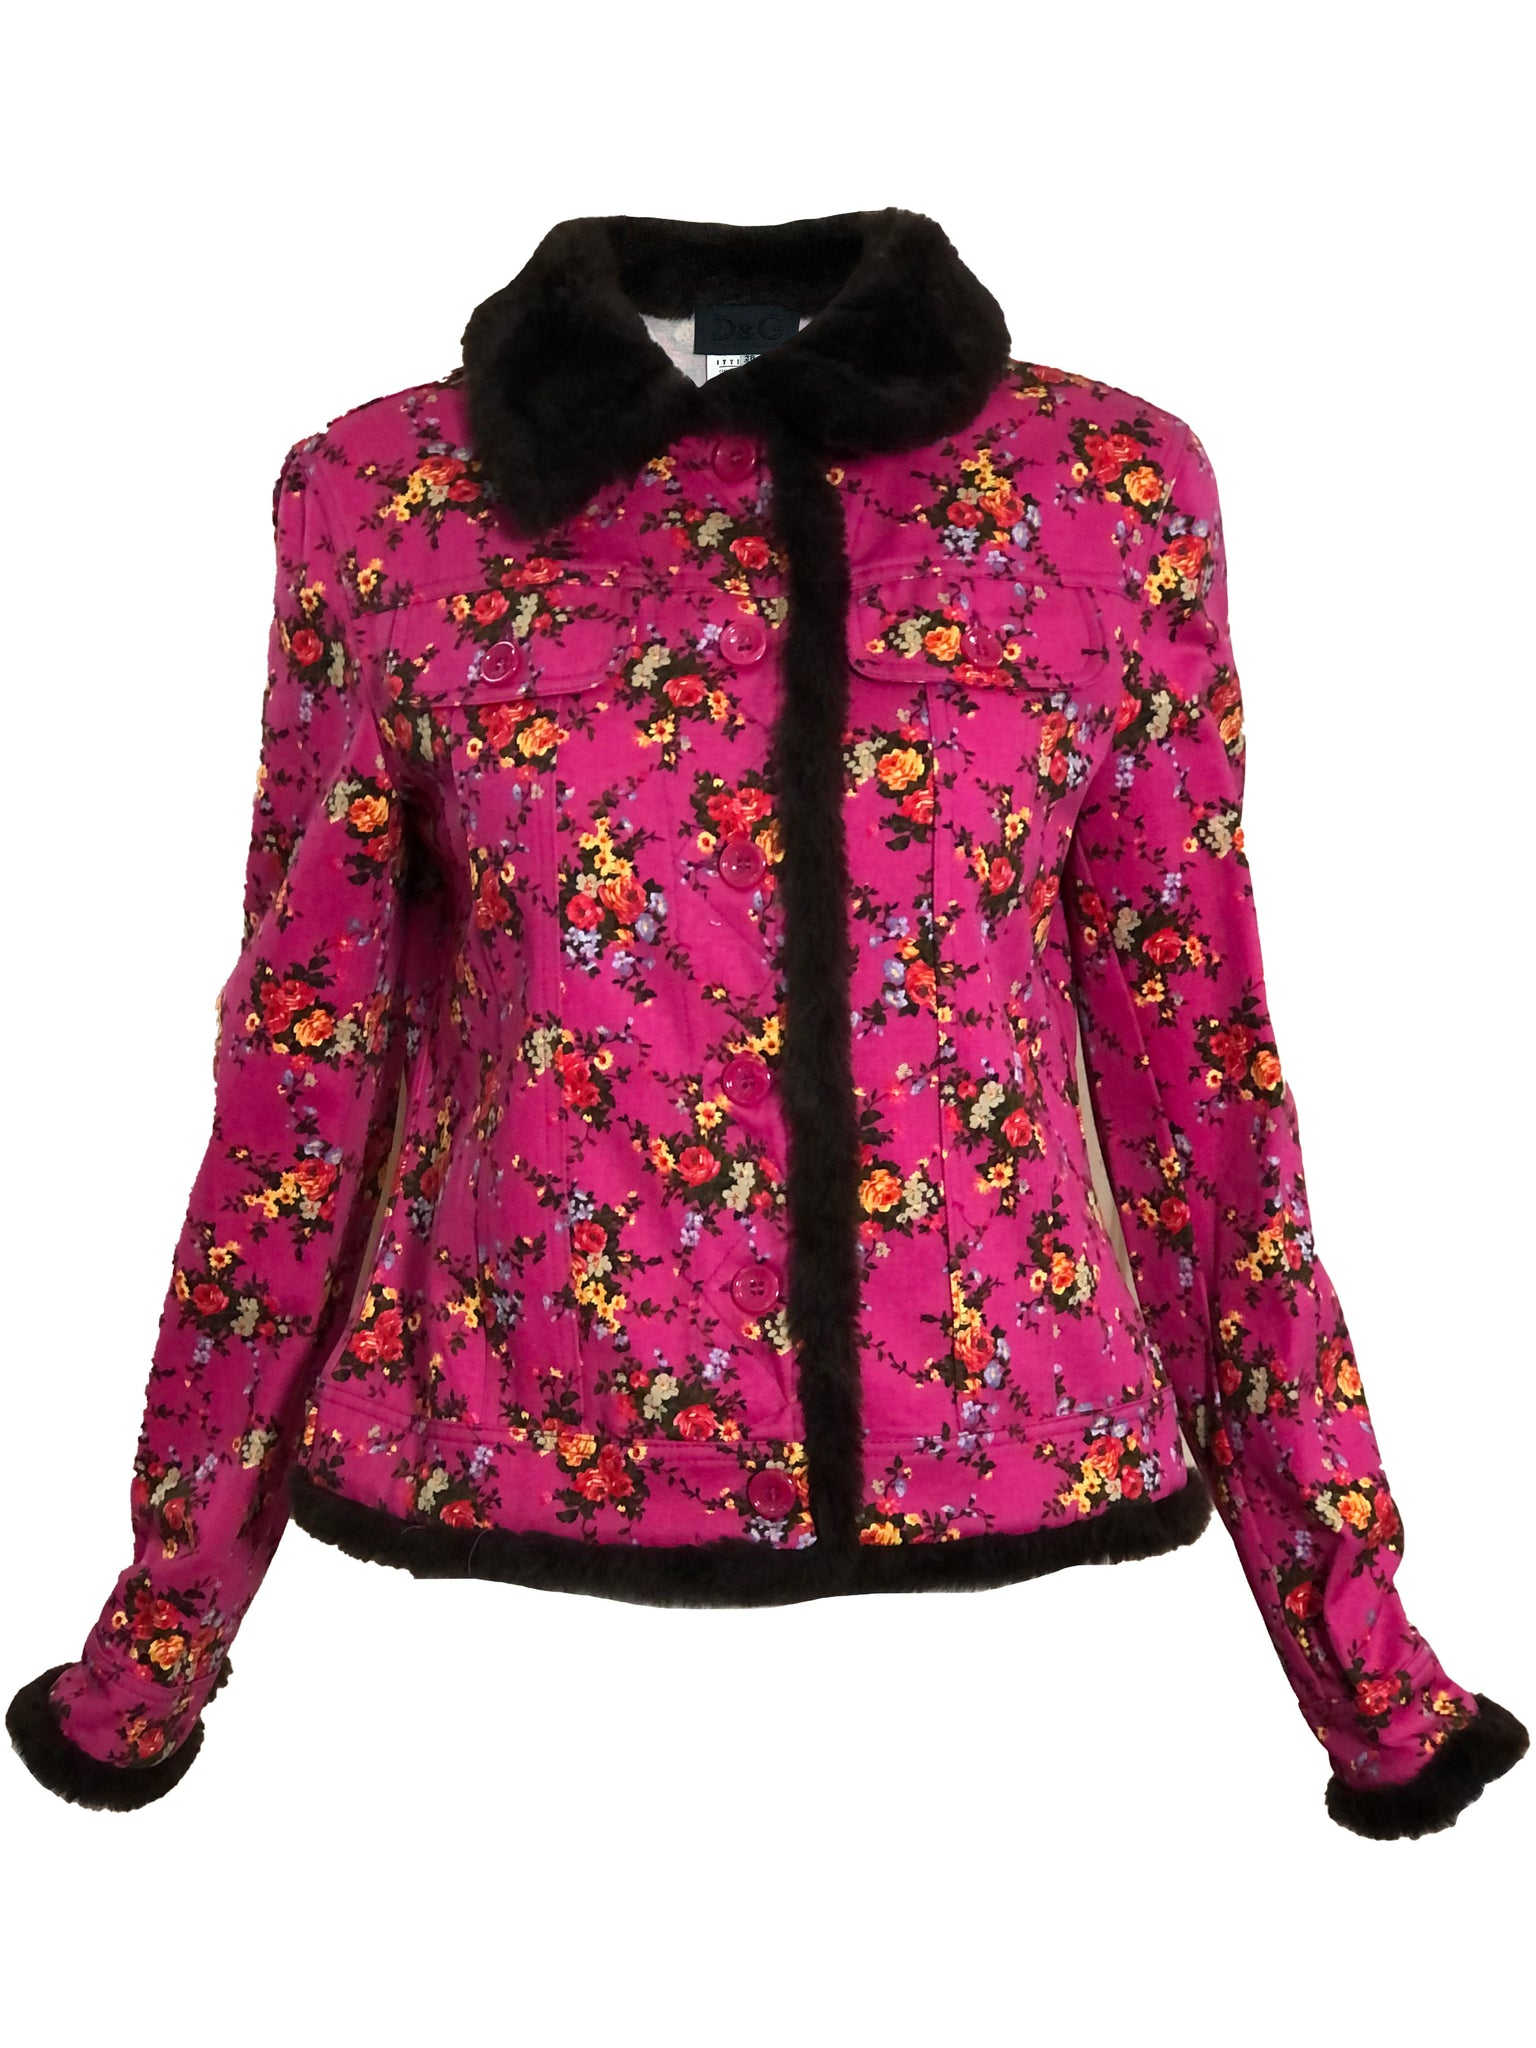 Dolce and Gabbana Two Piece Pink Floral Denim Ensemble JACKET 3 of 6